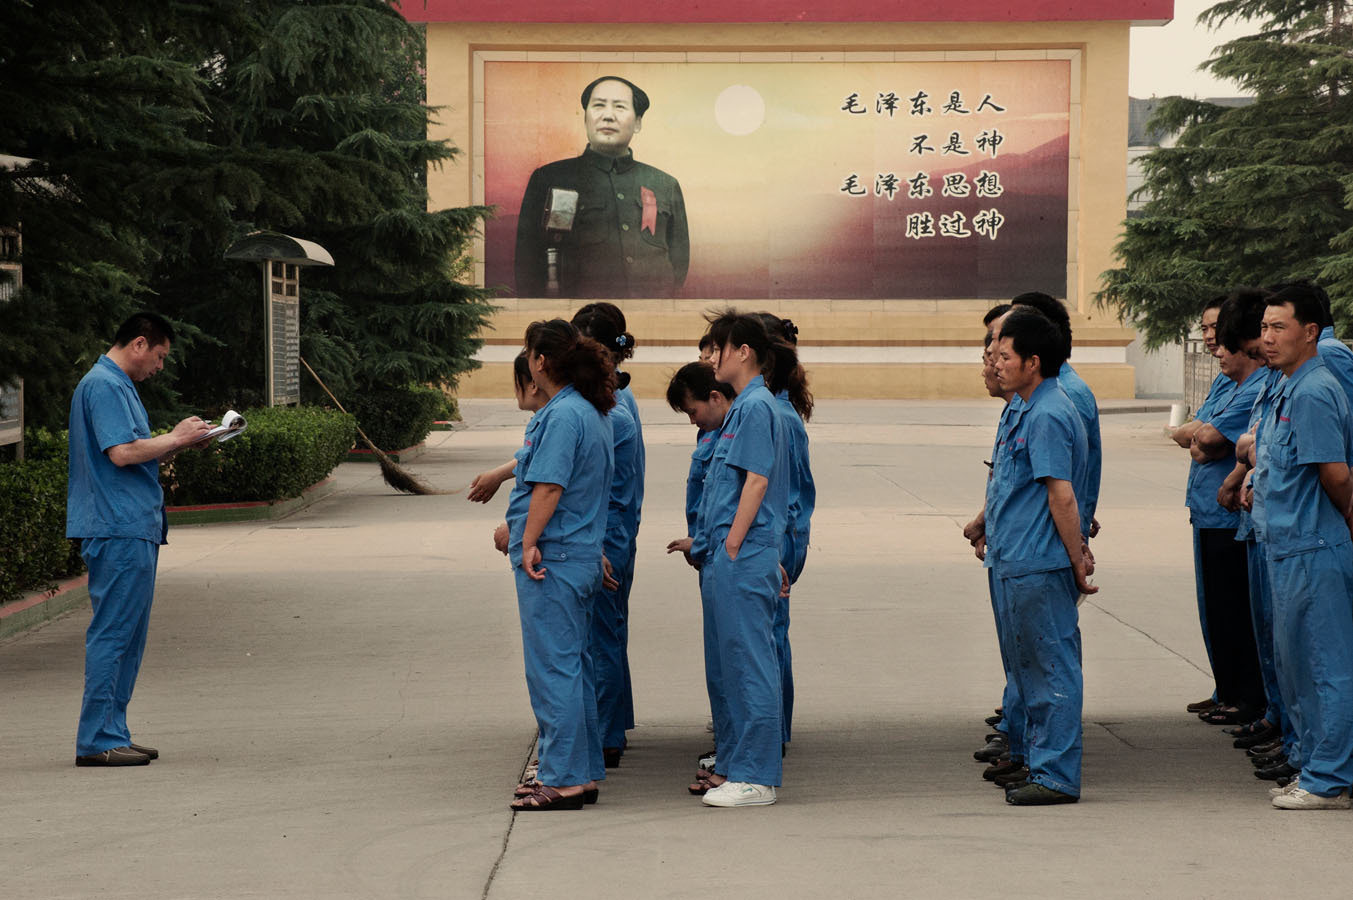 """Workers standing up for the call before taking their shift at a factory in Nanjie. Behind them stands a large billboard with Chairman Mao and the slogan """"""""Mao Zedong is human being not a God, but Mao Zedong thought is greater than God""""."""